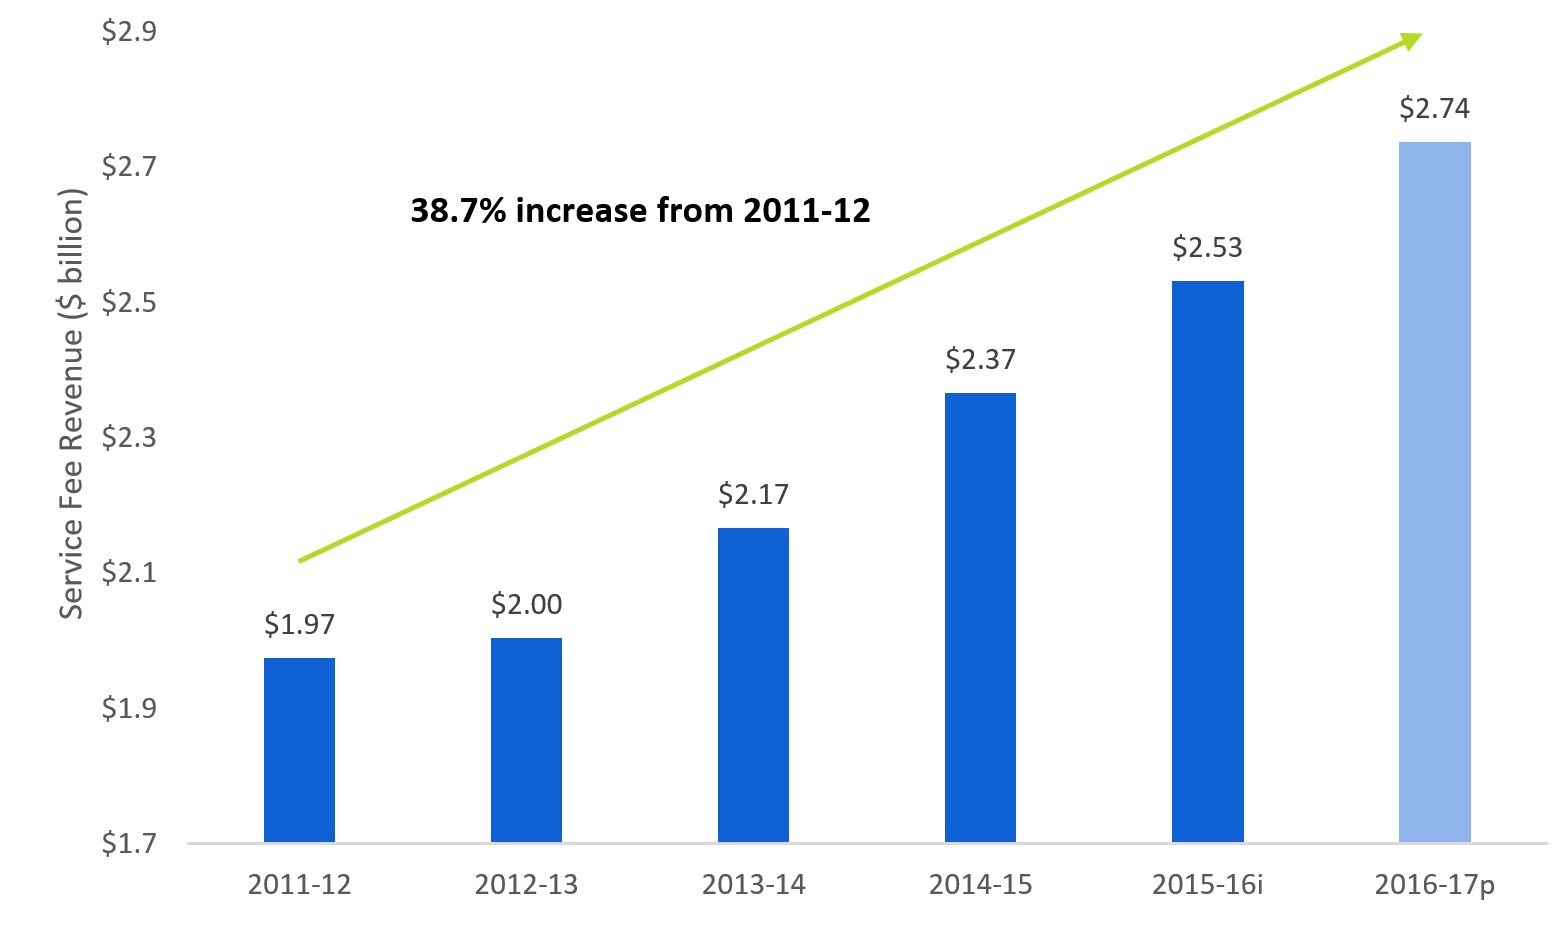 Image: 38.7% increase from 2011-12